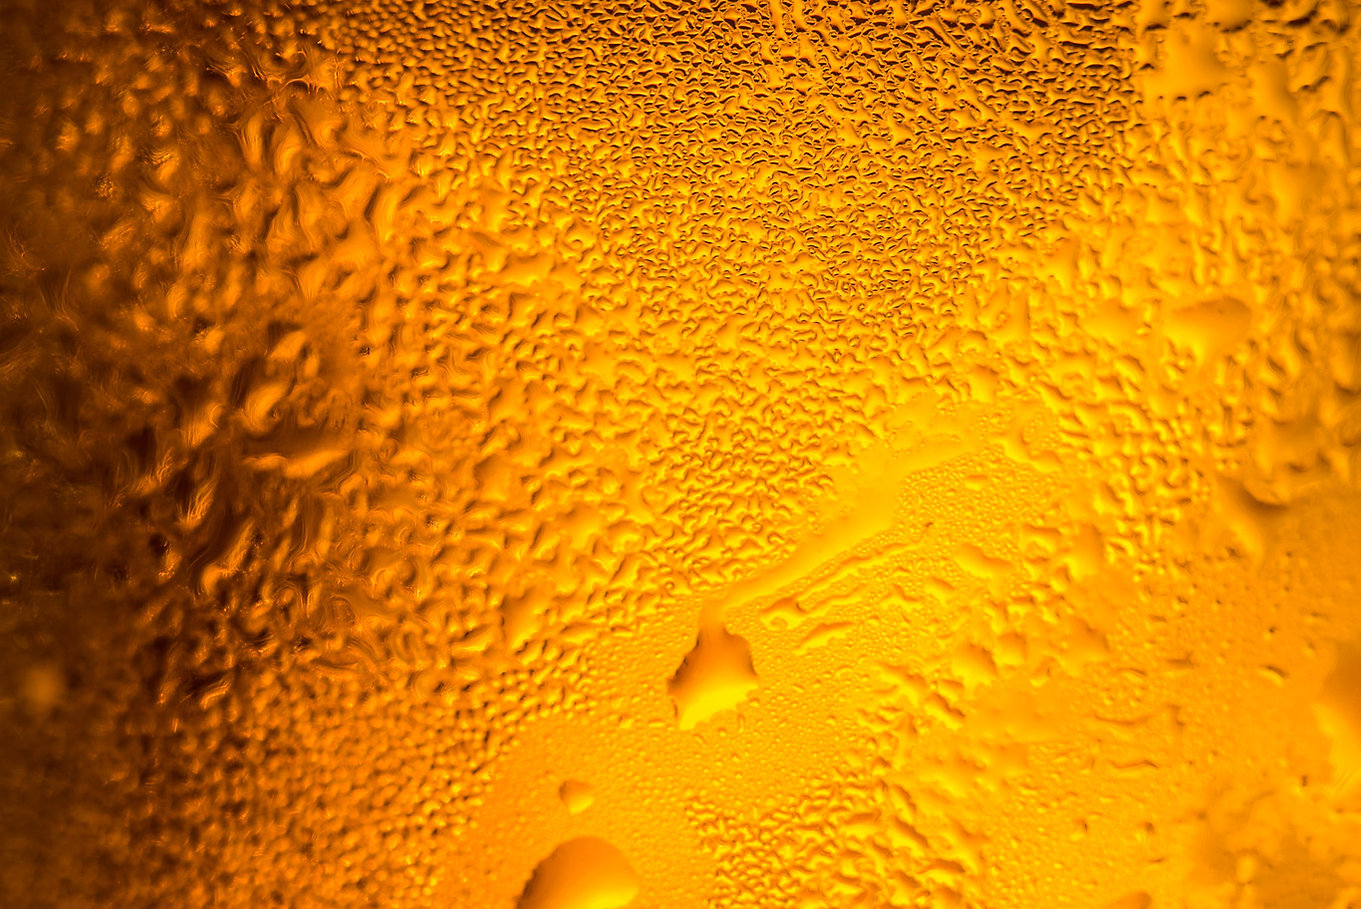 cold-beer-in-a-glass-with-water-drops-up